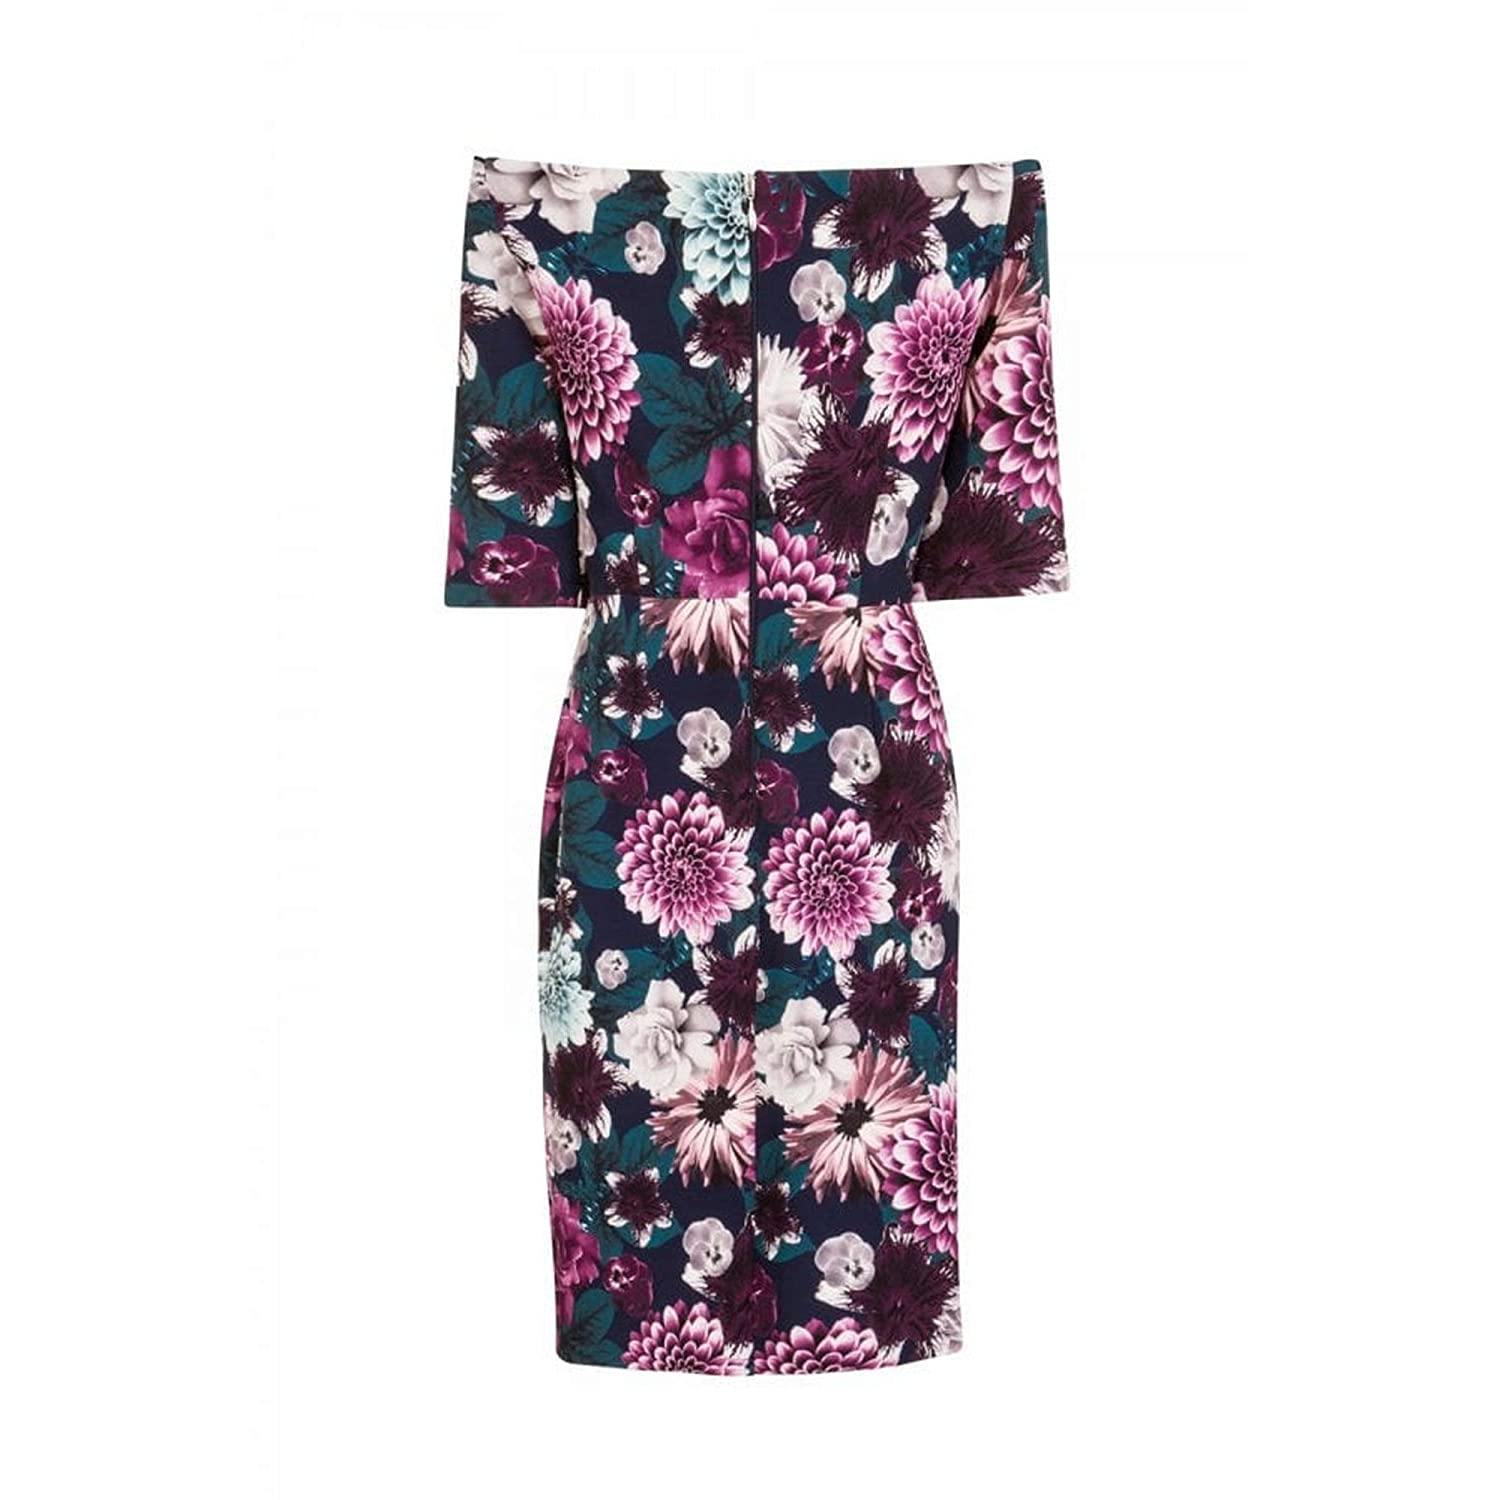 c8ffc910a9988f Paper Dolls Womens/Ladies Nelson Floral Bardot Dress (14 UK) (Floral):  Amazon.co.uk: Clothing